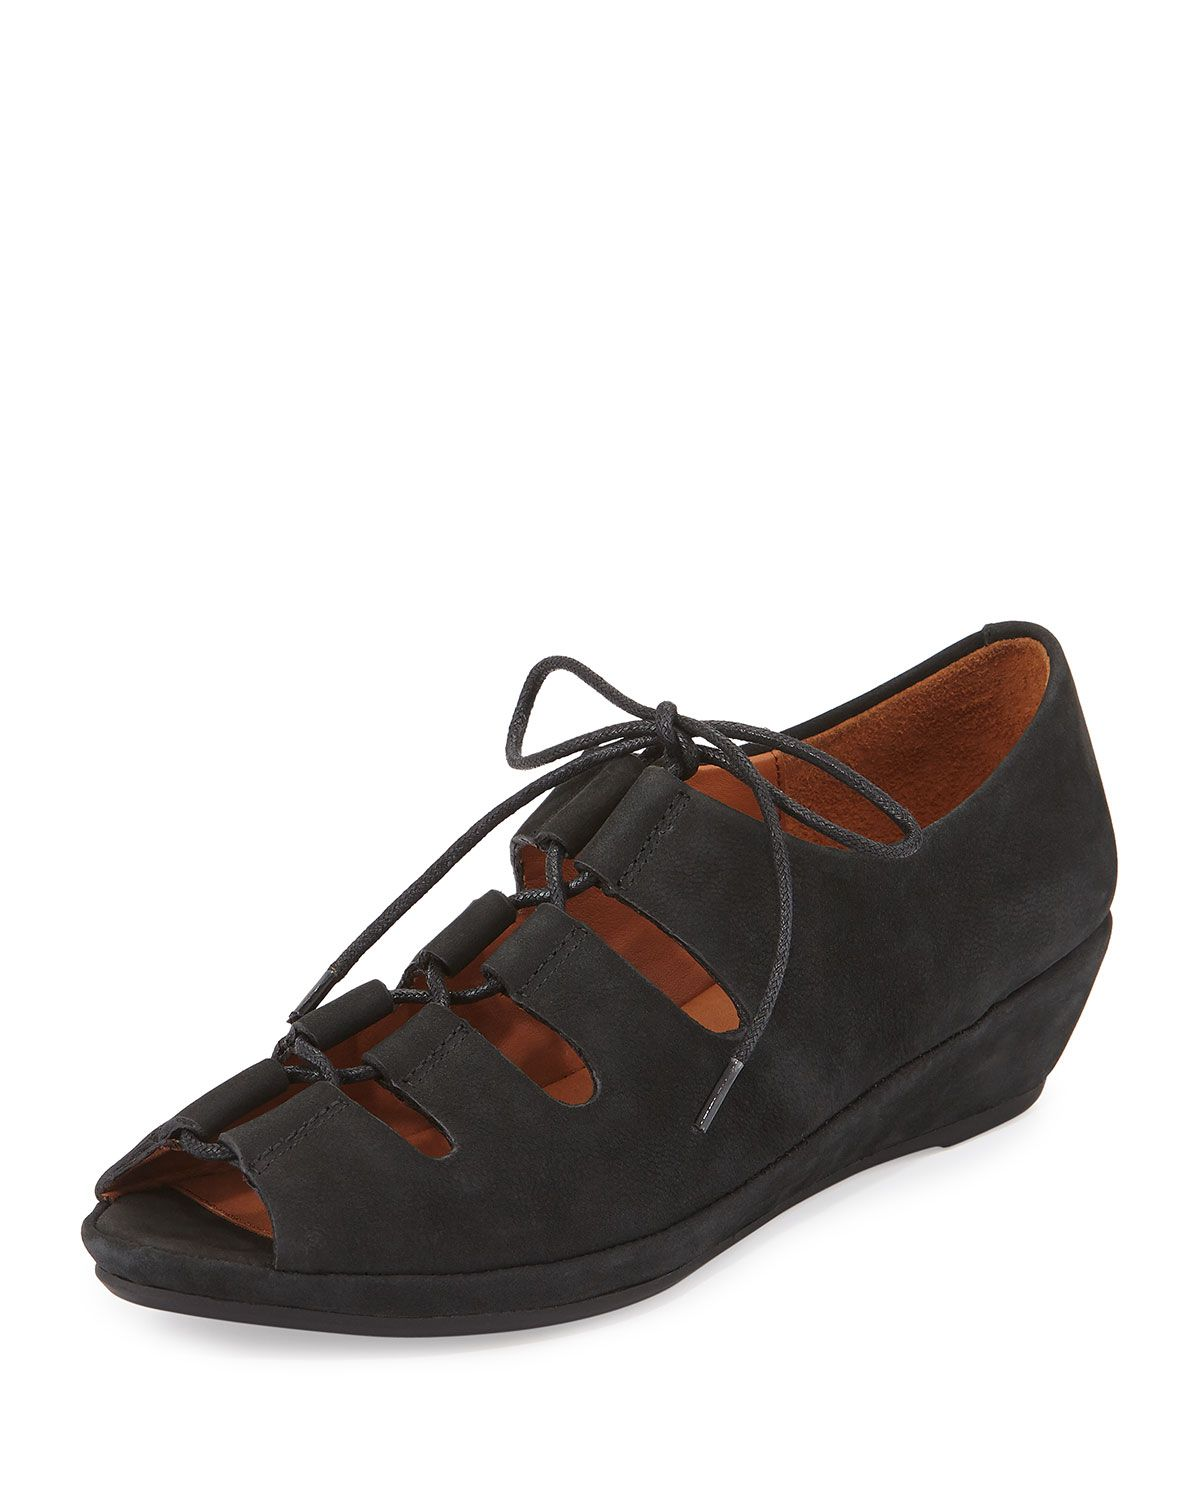 Vally Lilly Lace-Up Wedge, Black, Women's, Size: 39B/9B - Gentle Souls